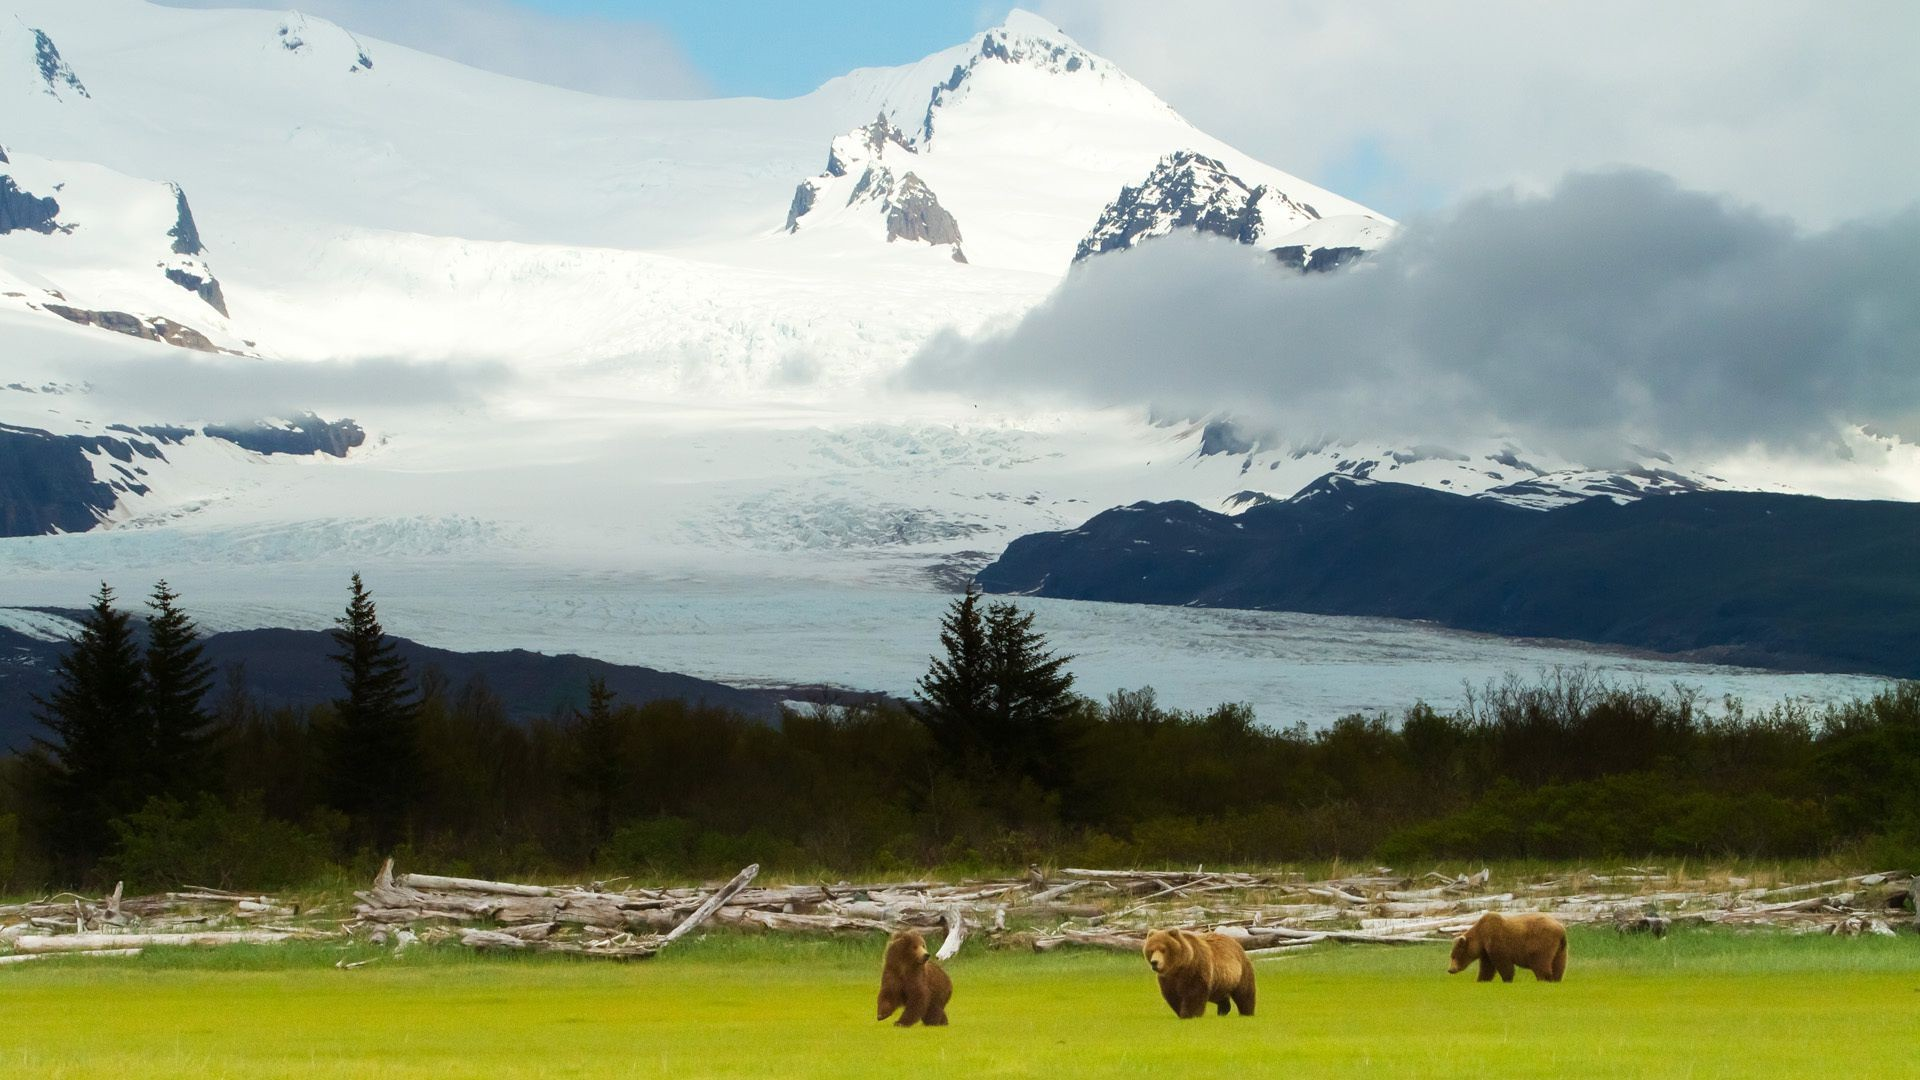 Mountain Bears Alaska Grizzly Scenery Android Wallpapers For Free